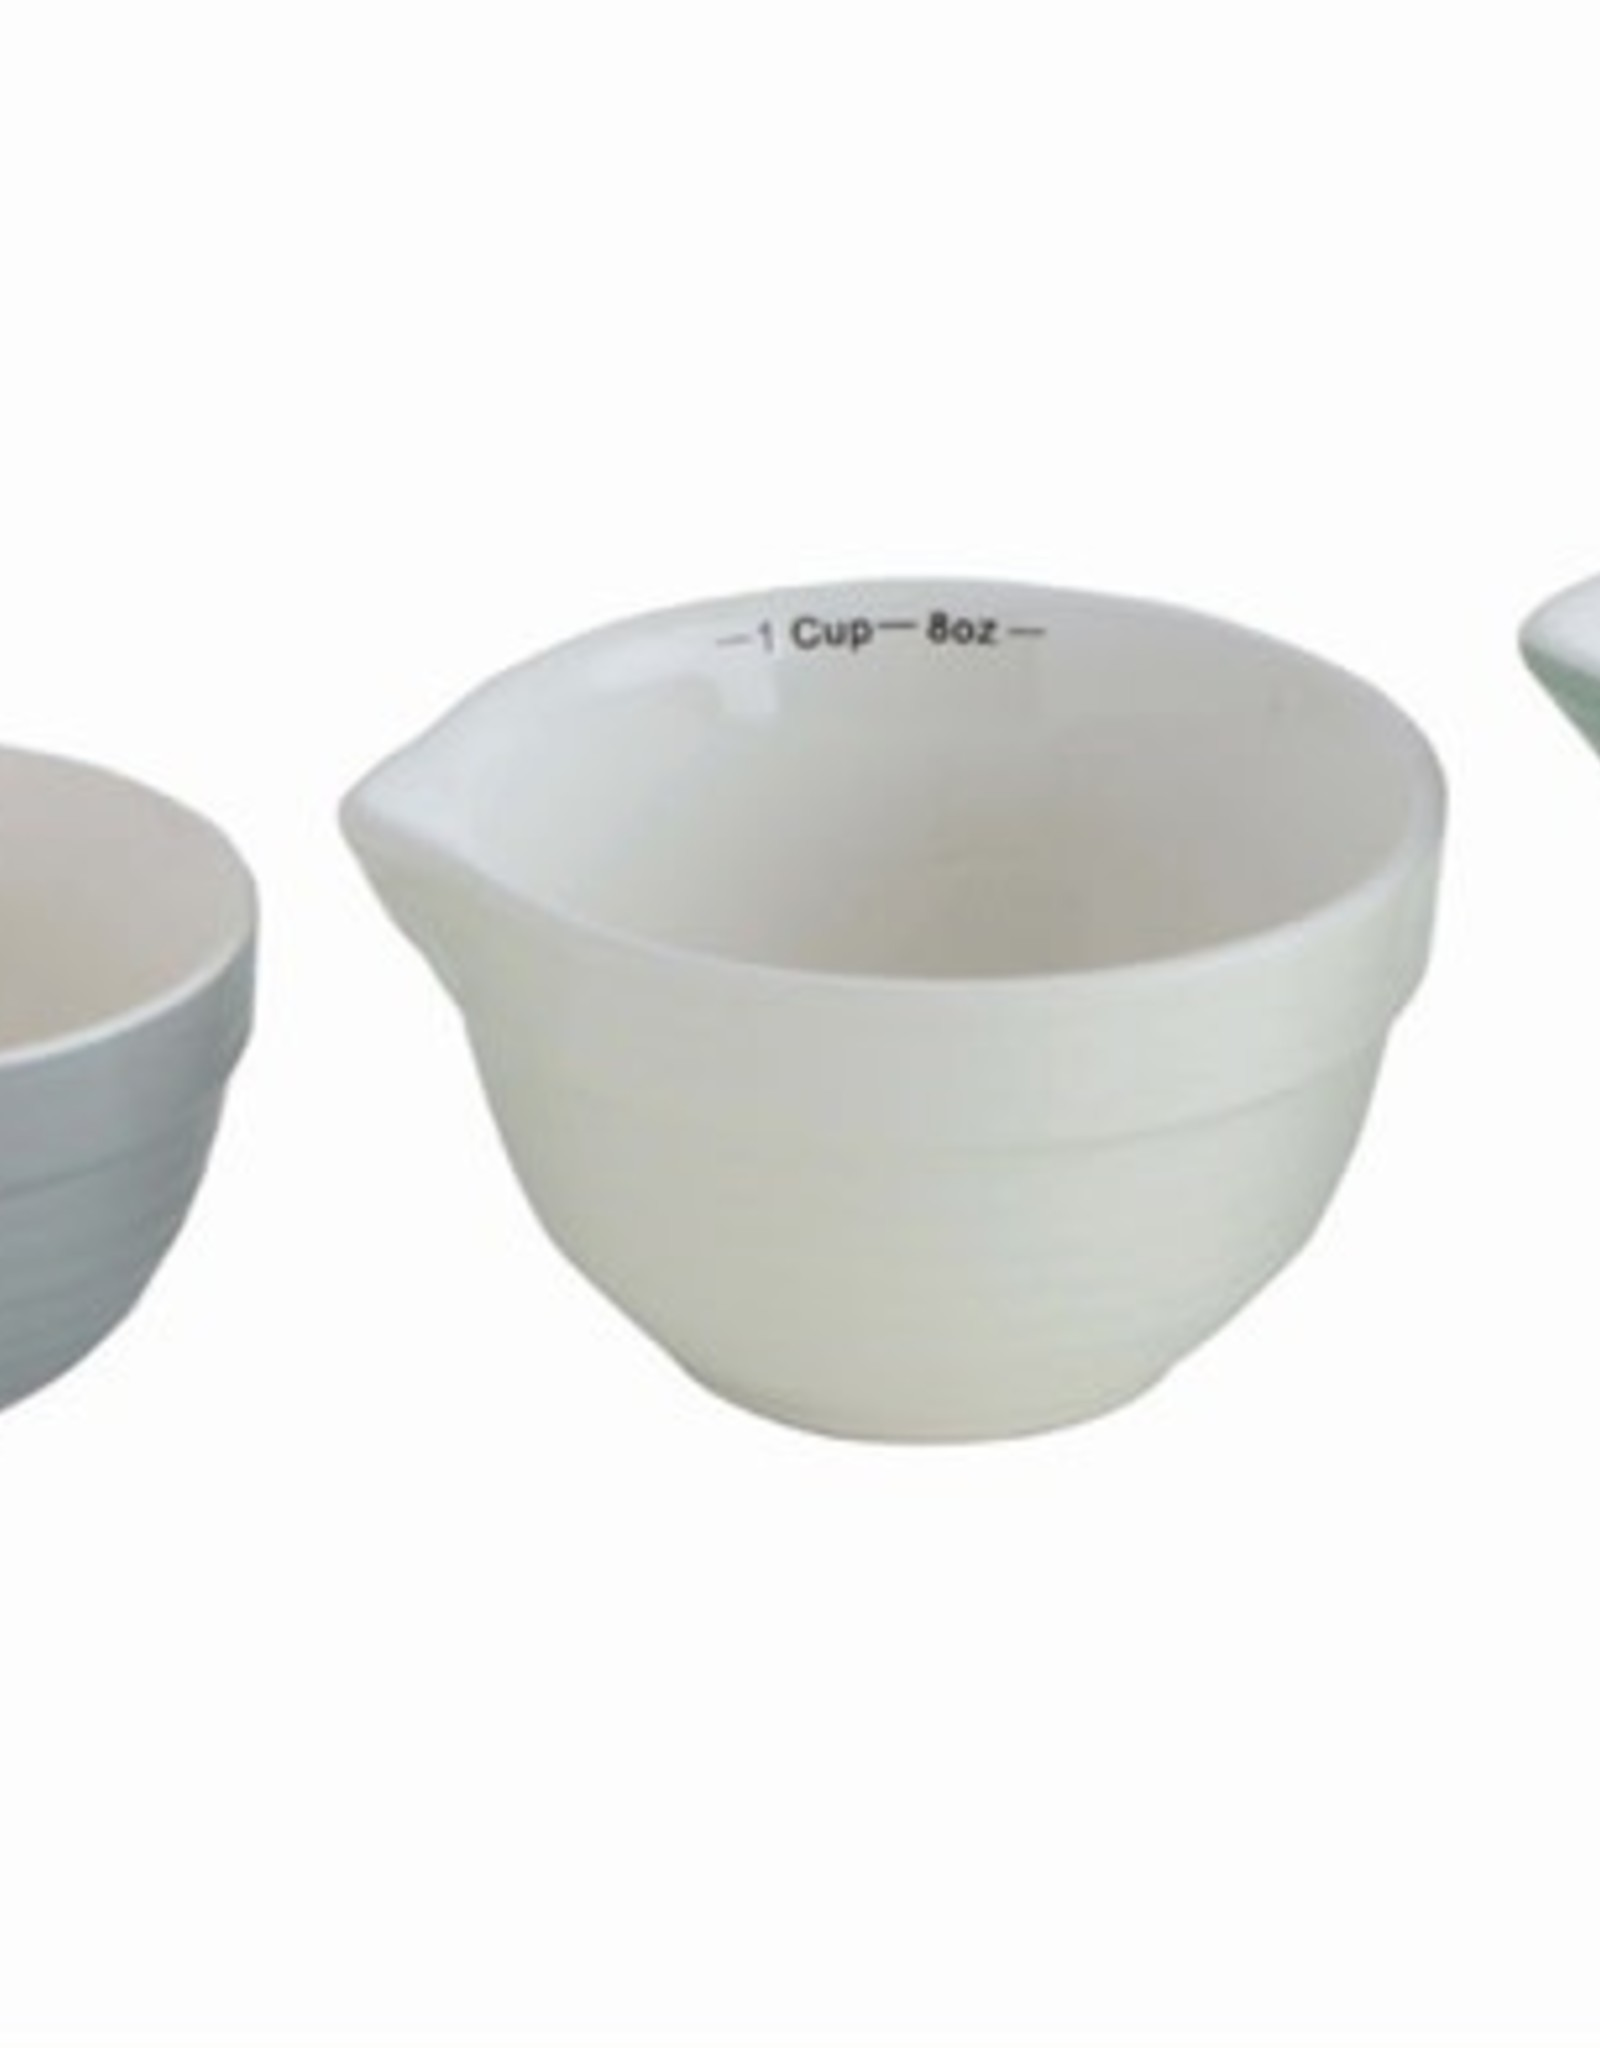 Batter Bowl Measuring Cups - Set of 4